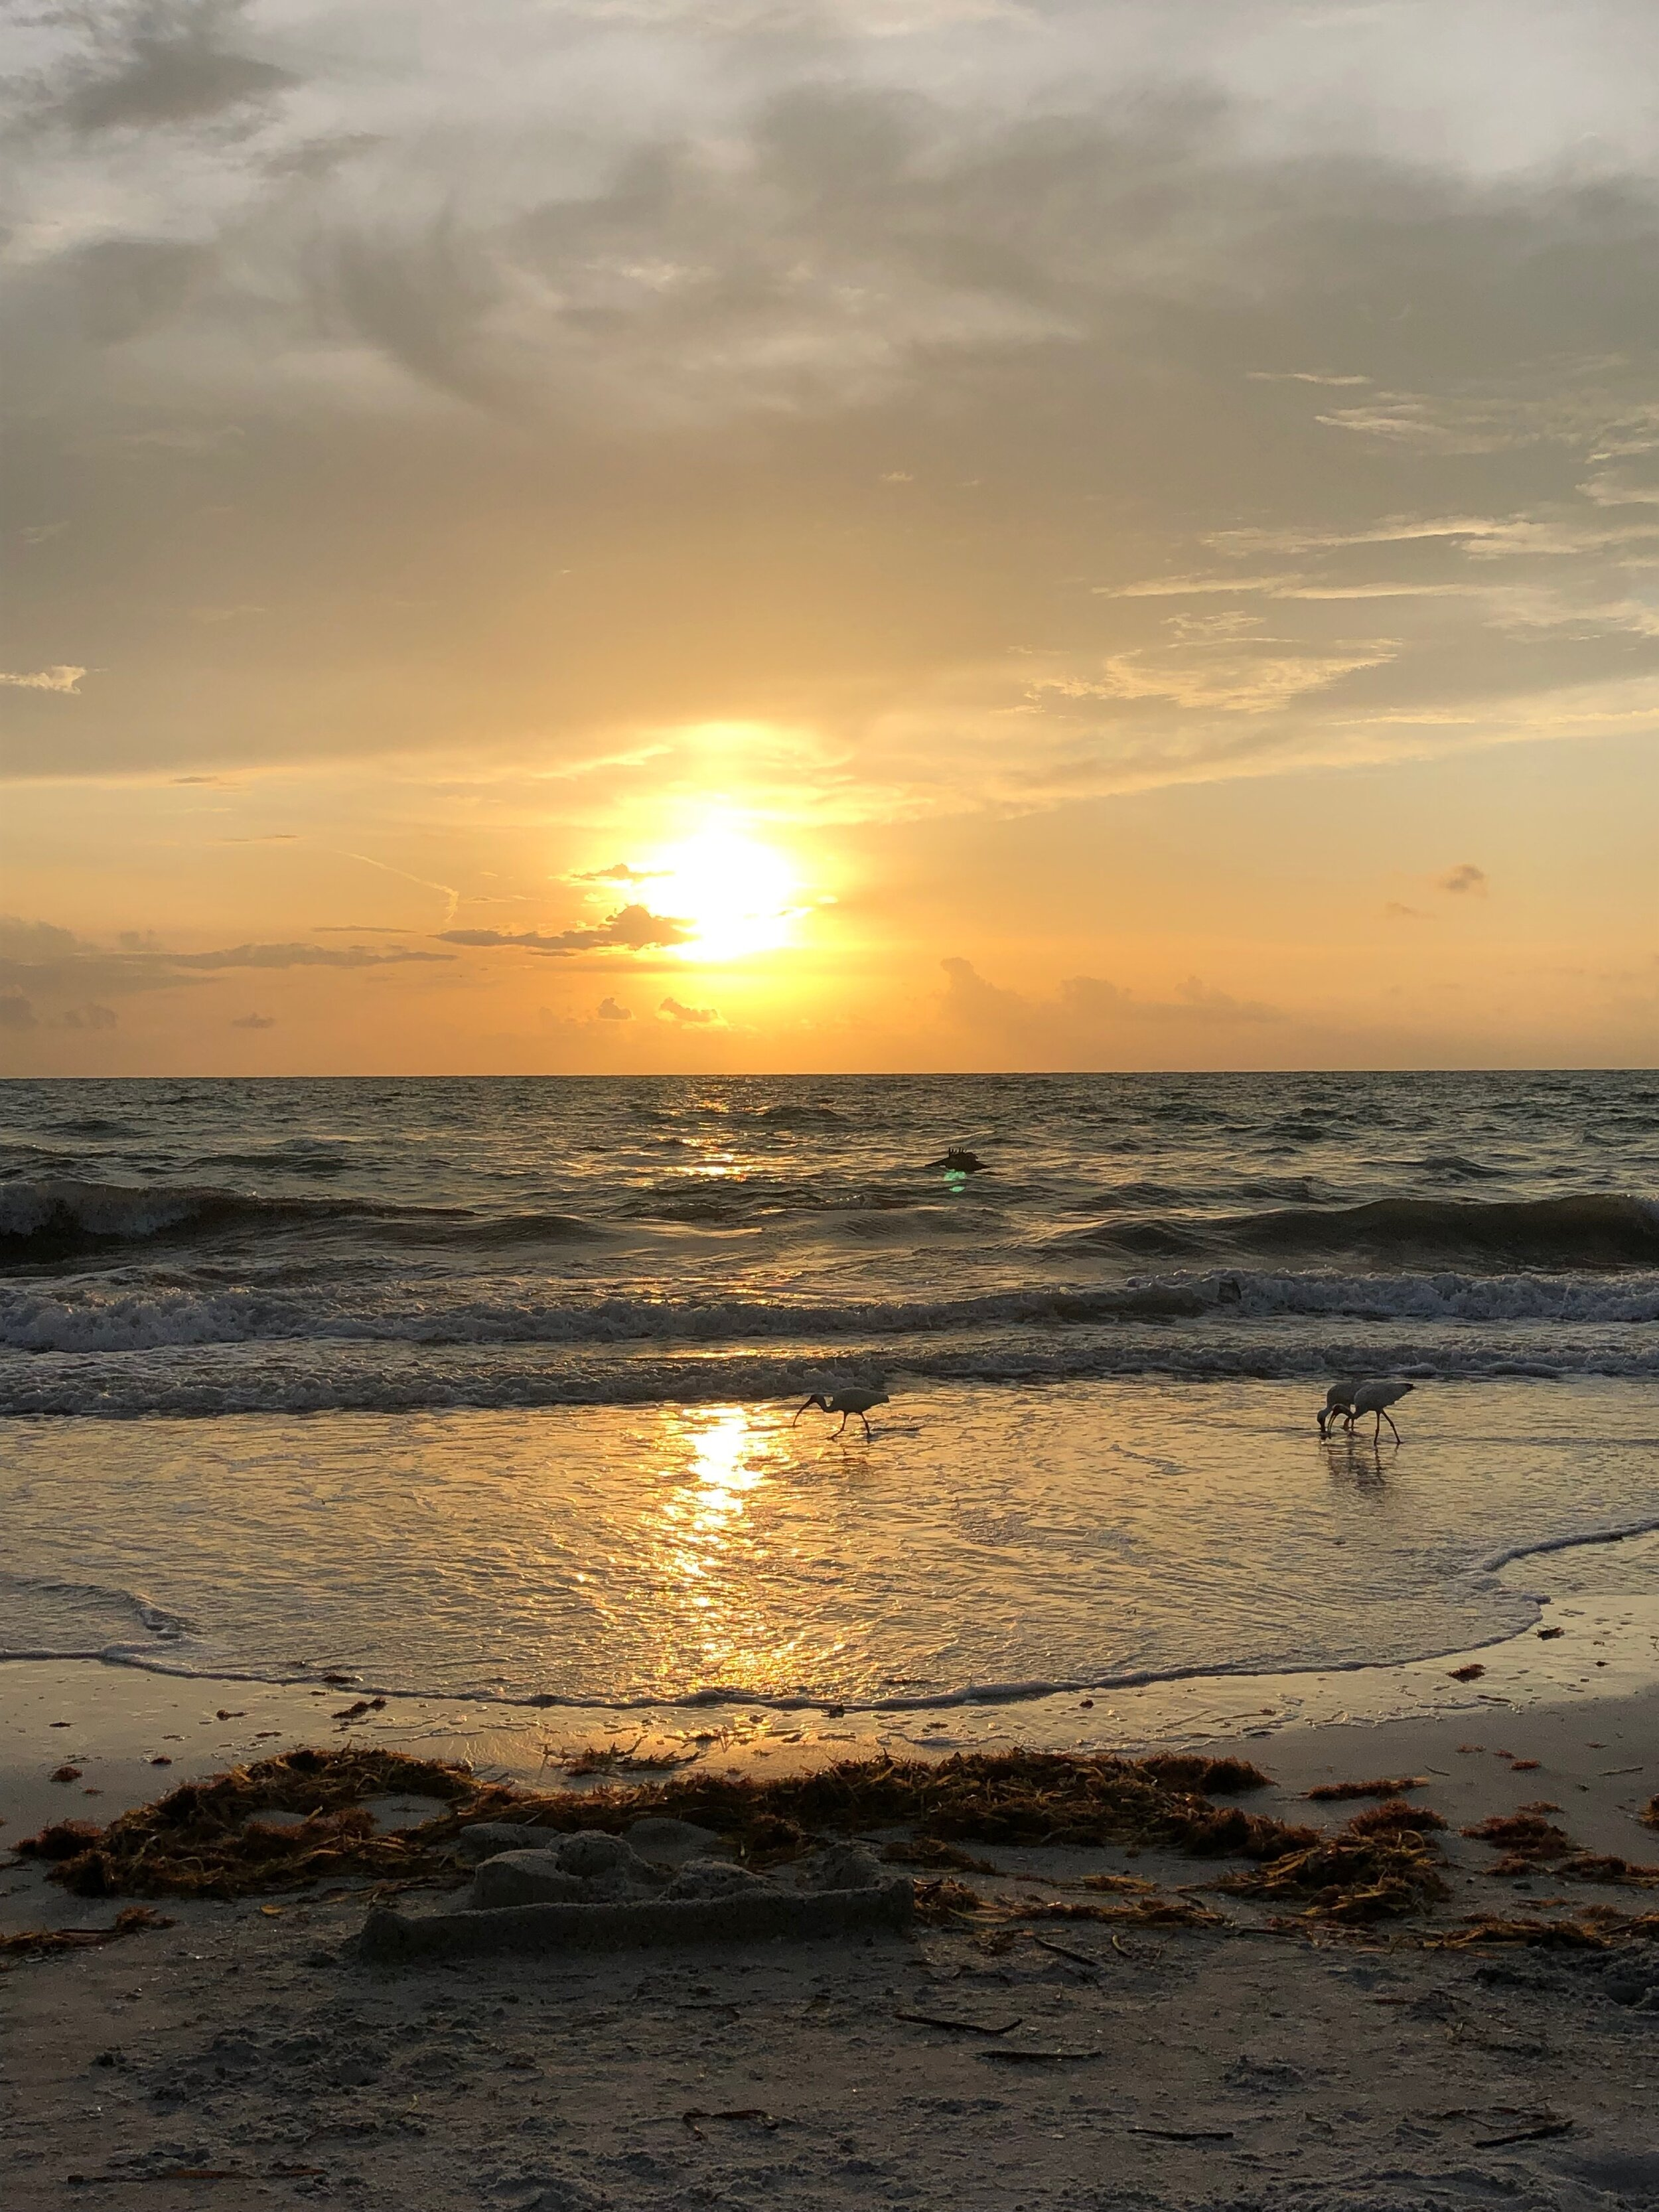 Sunset in Clearwater, Florida